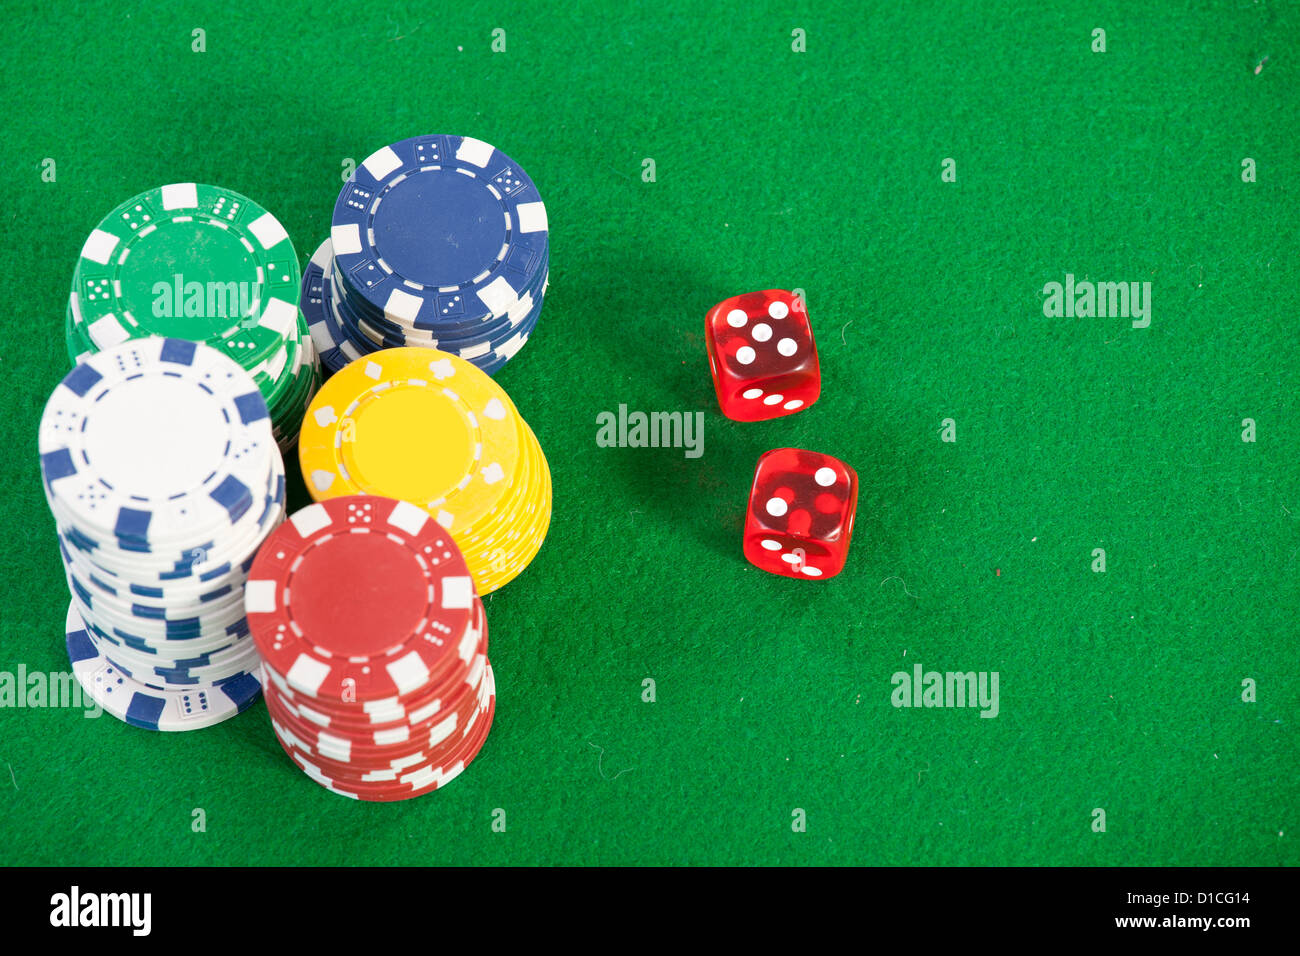 red dice on a casino table with chips - Stock Image